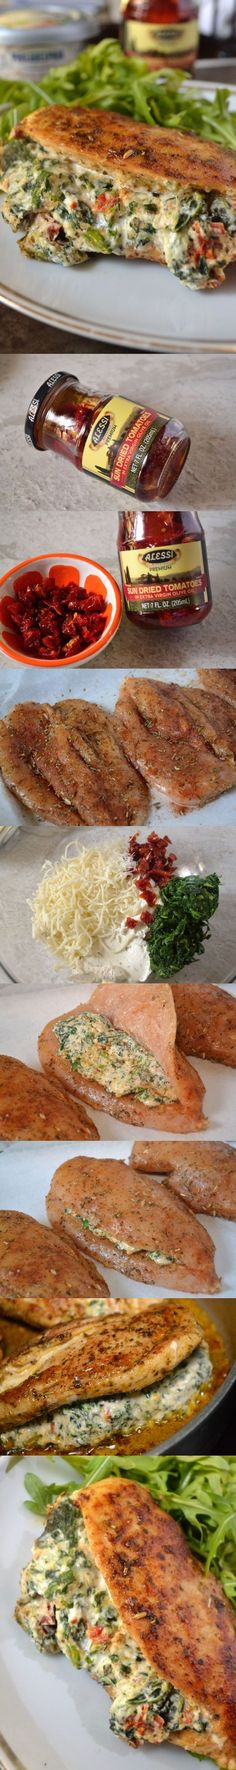 Stuffed Tuscan Chicken - Coop Can Cook Ww Recipes, Copycat Recipes, Fall Recipes, Cooking Recipes, Casserole Kitchen, Bean Casserole, Ribs In Oven, Specialty Meats, Tuscan Chicken